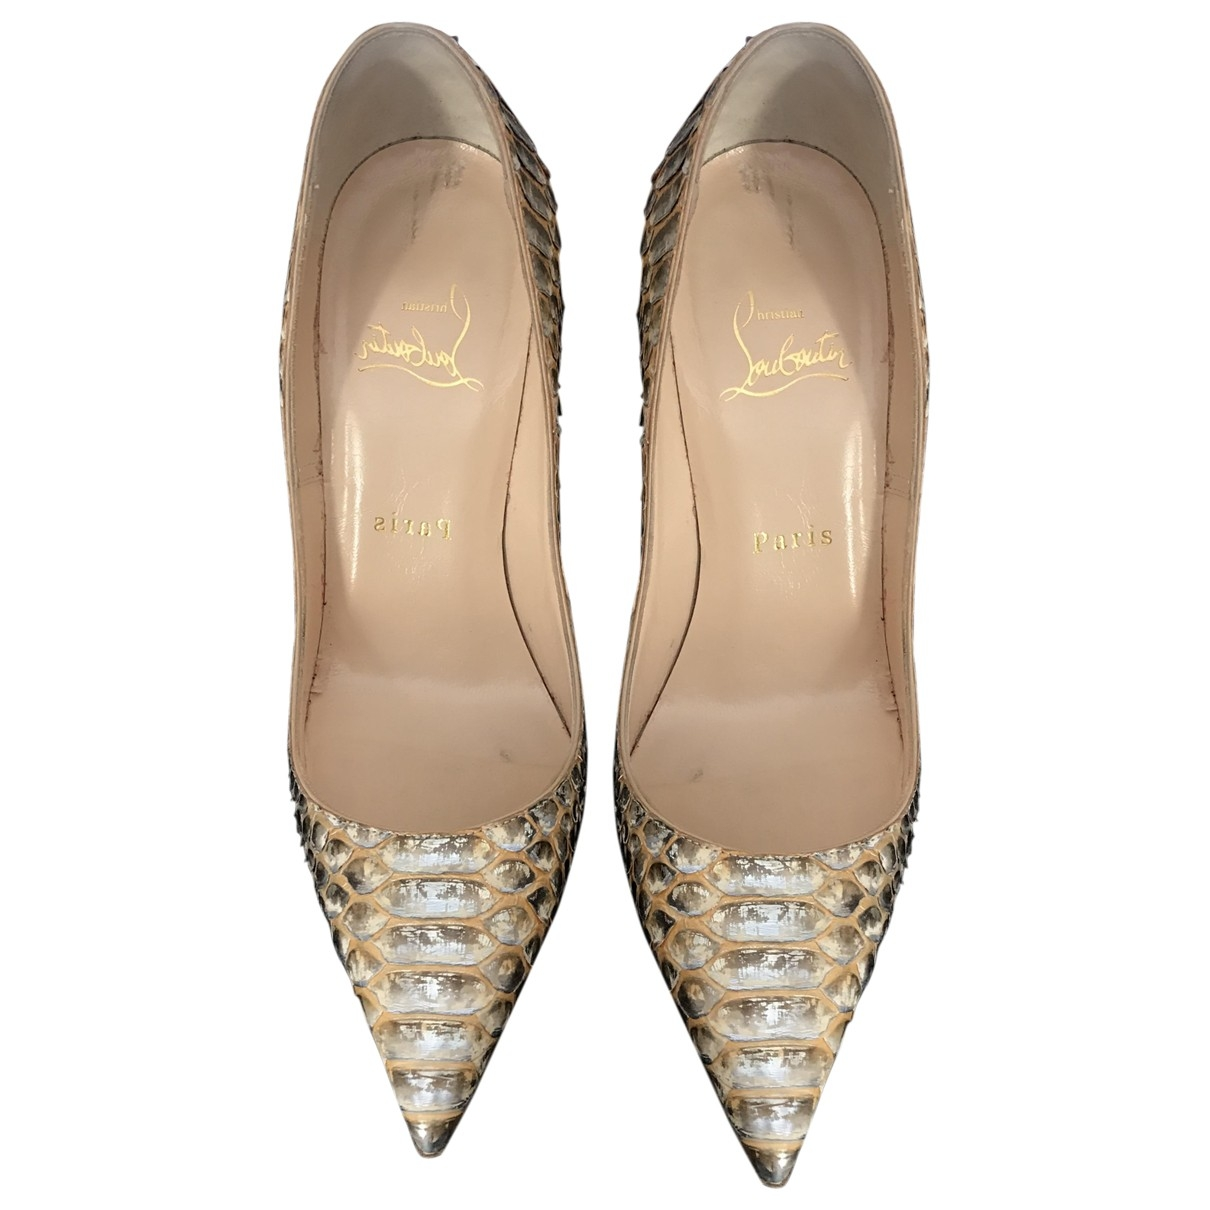 Christian Louboutin Pigalle Pumps in  Beige Python